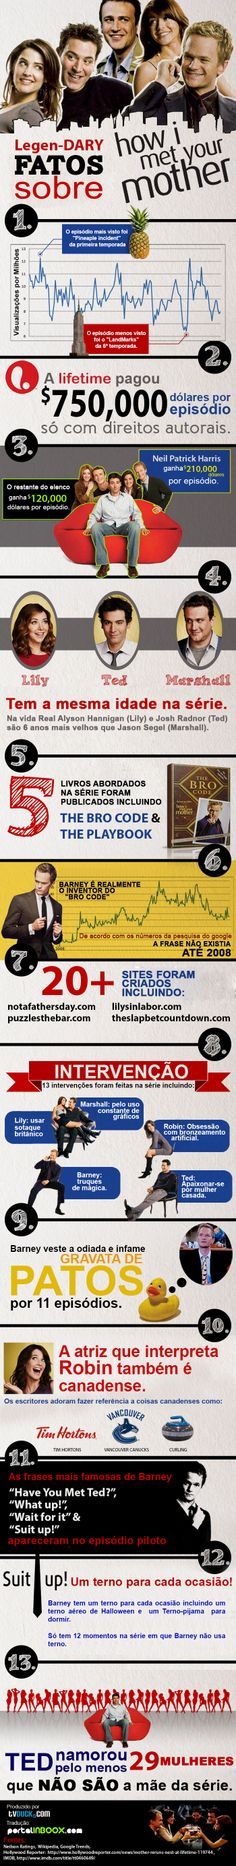 Legen-DARY facts about How I Met Your Mother - How I Met Your Mother has been making us laugh since TVDuck has put together an infographic highlighting some of the amazing stats behind one of our favorite shows. My most FAVORITE show ever! How I Met Your Mother, I Meet You, Just For You, Thats 70 Show, Movies And Series, Comedy, Himym, Serge Gainsbourg, Book Tv